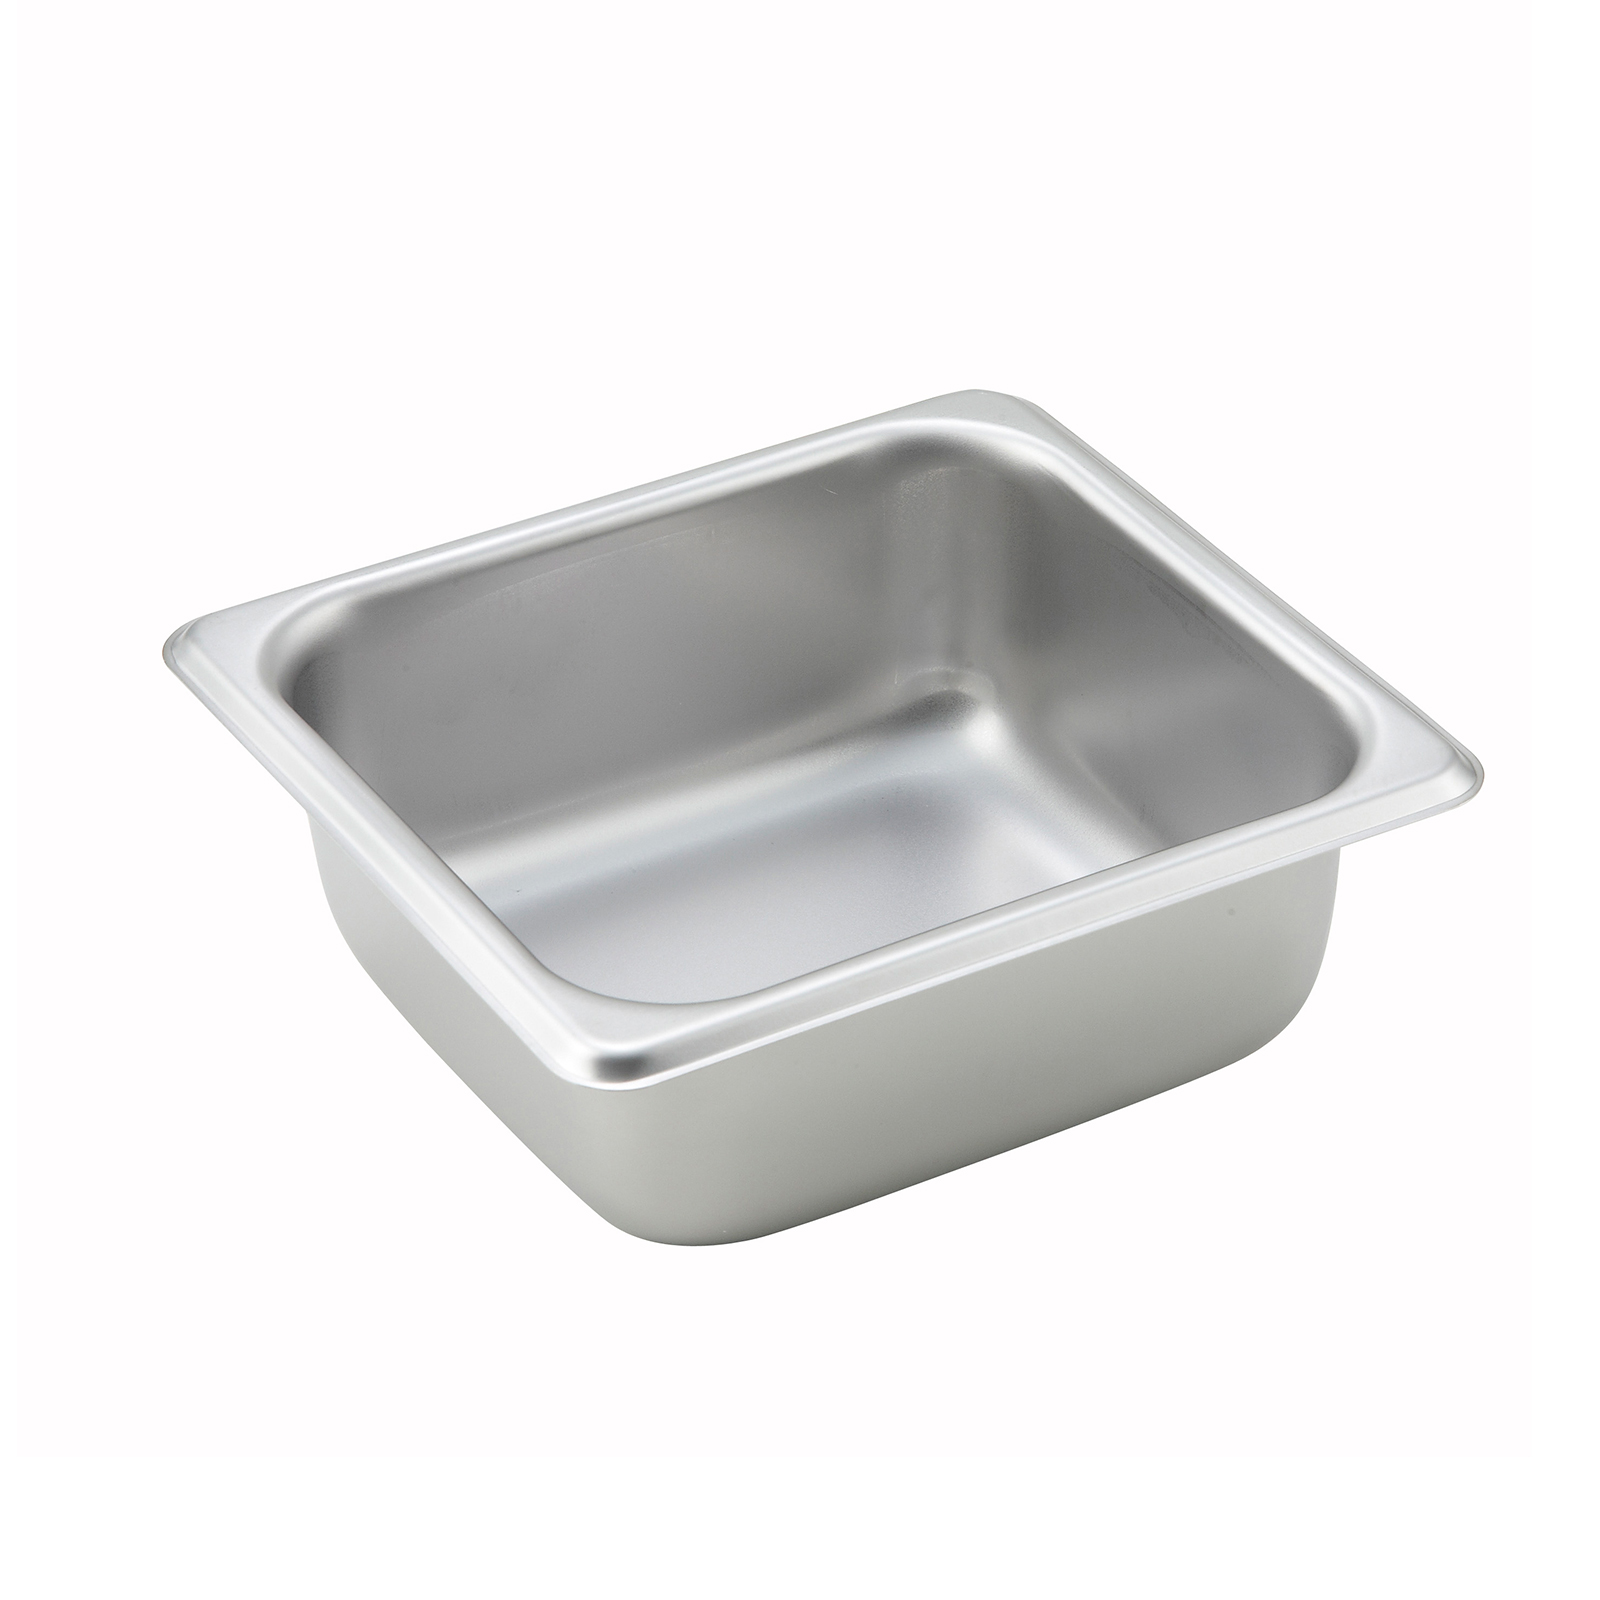 Winco SPS2 steam table pan, stainless steel